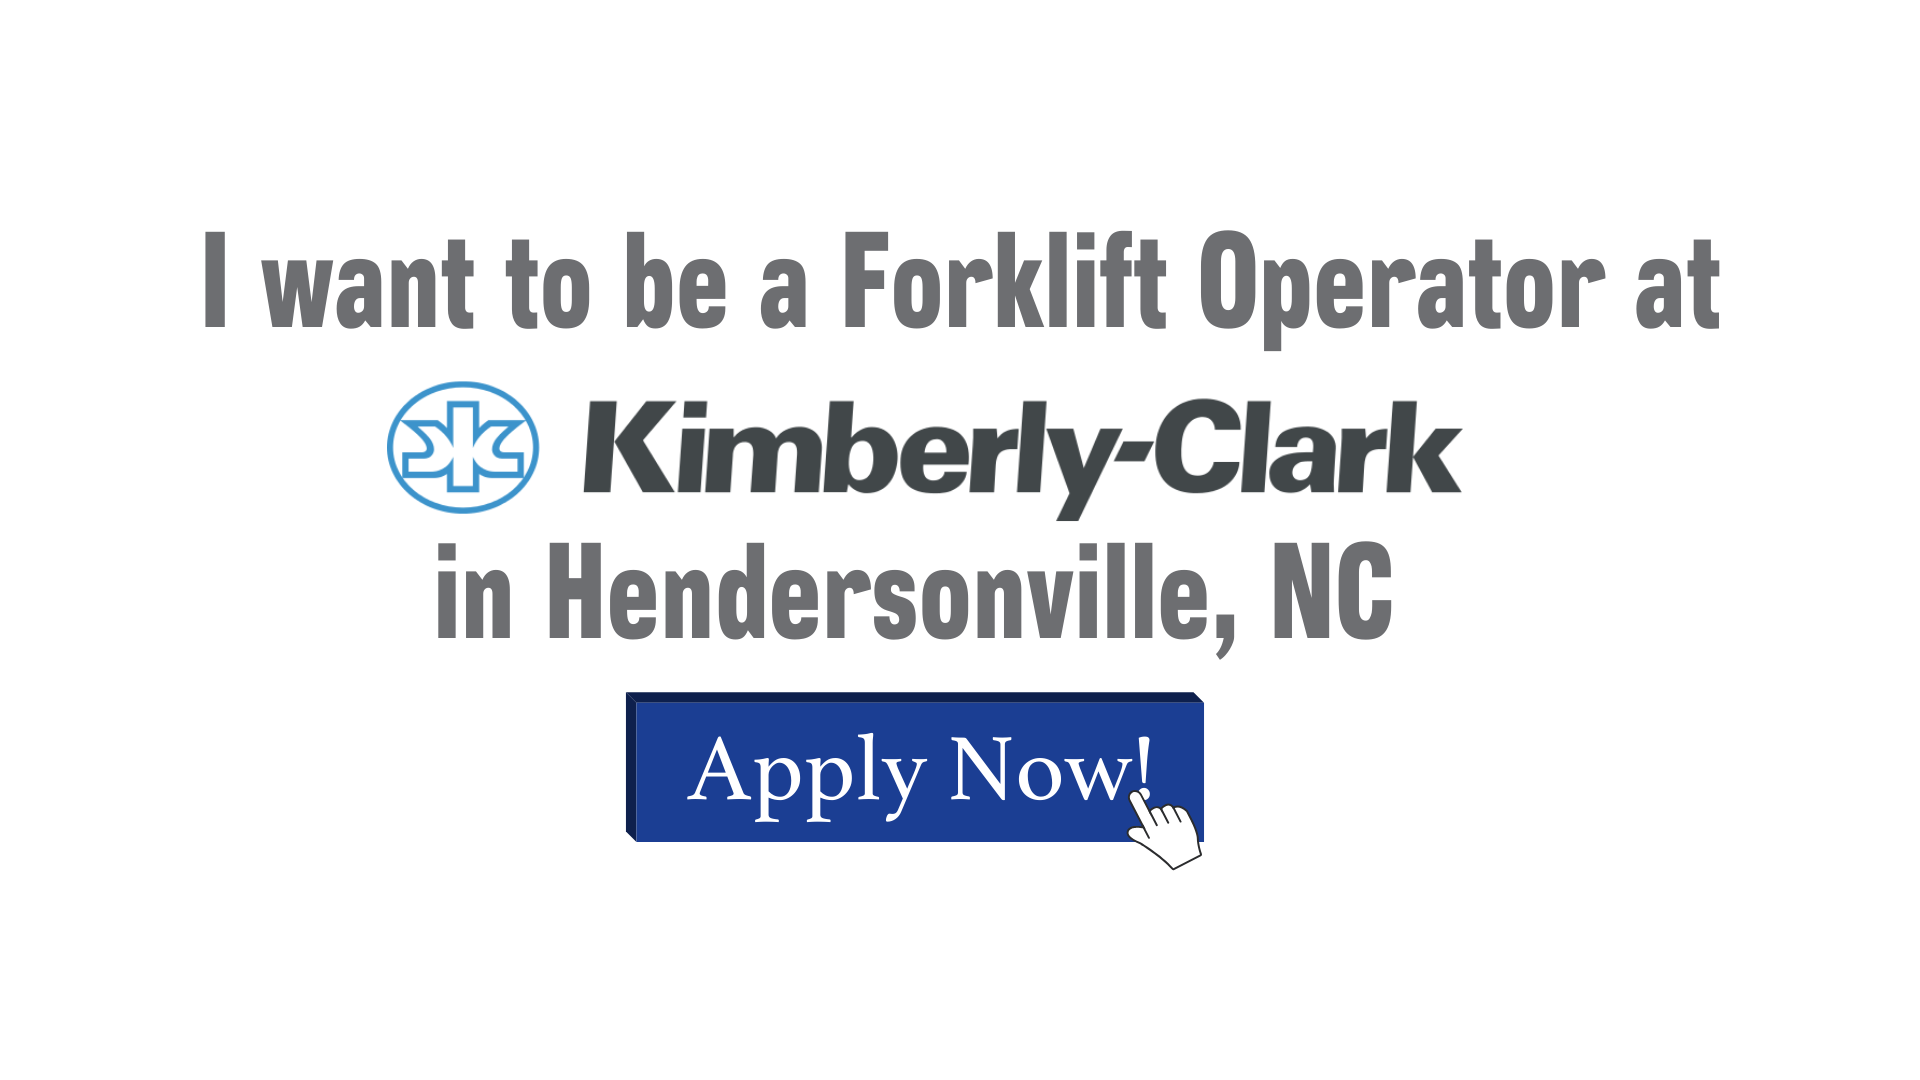 I want to be a Forklift Operator at Kimberly-Clark in Hendersonville